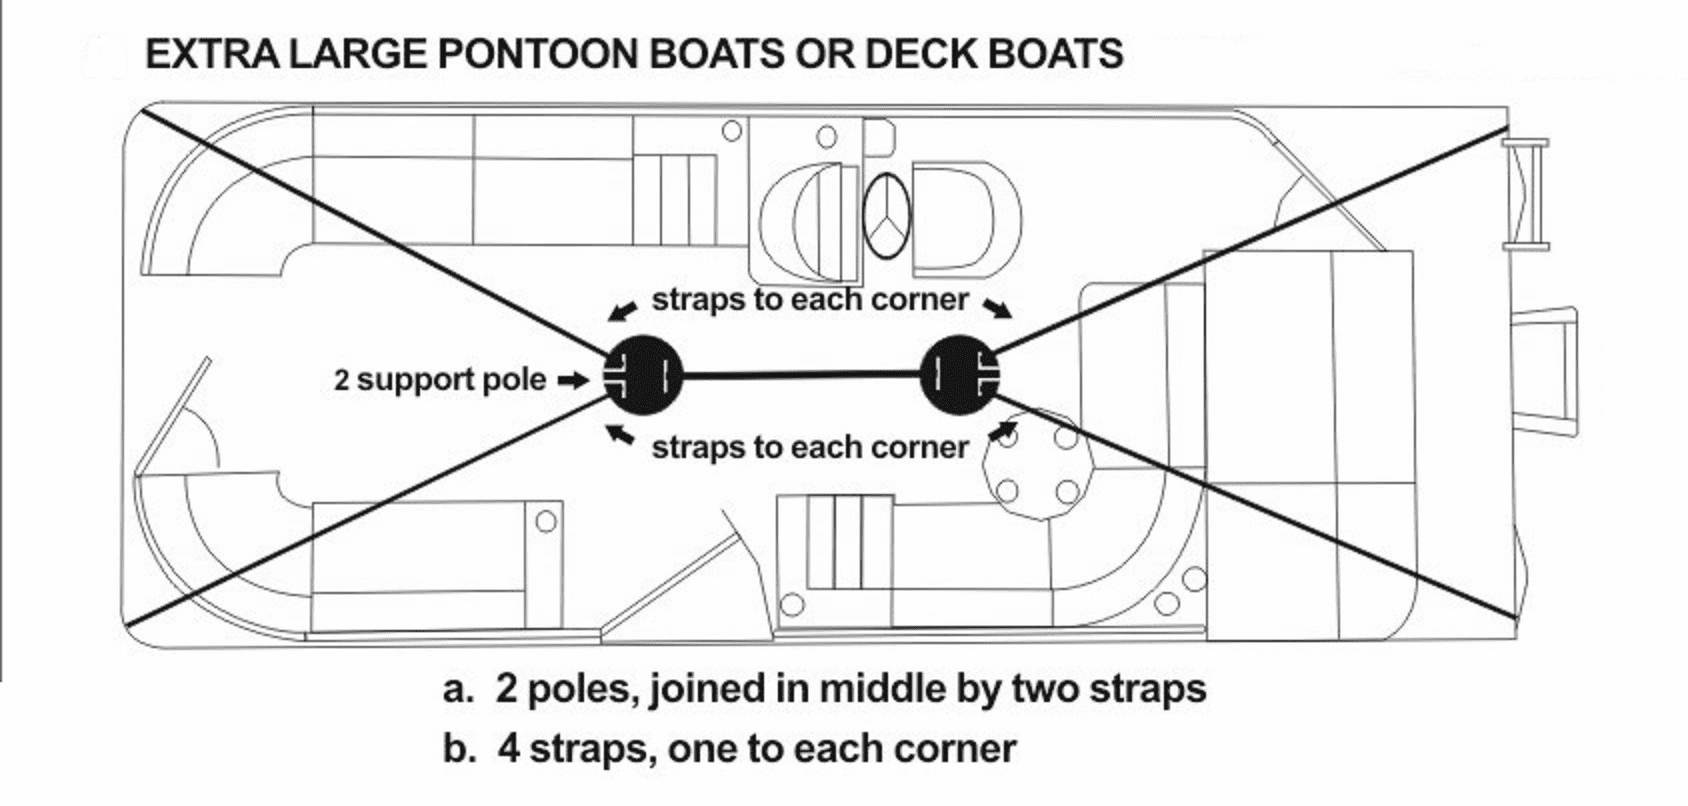 VORTEX TRIPLE PONTOON/DECK BOAT SUPPORT POLE SYSTEM<BR>